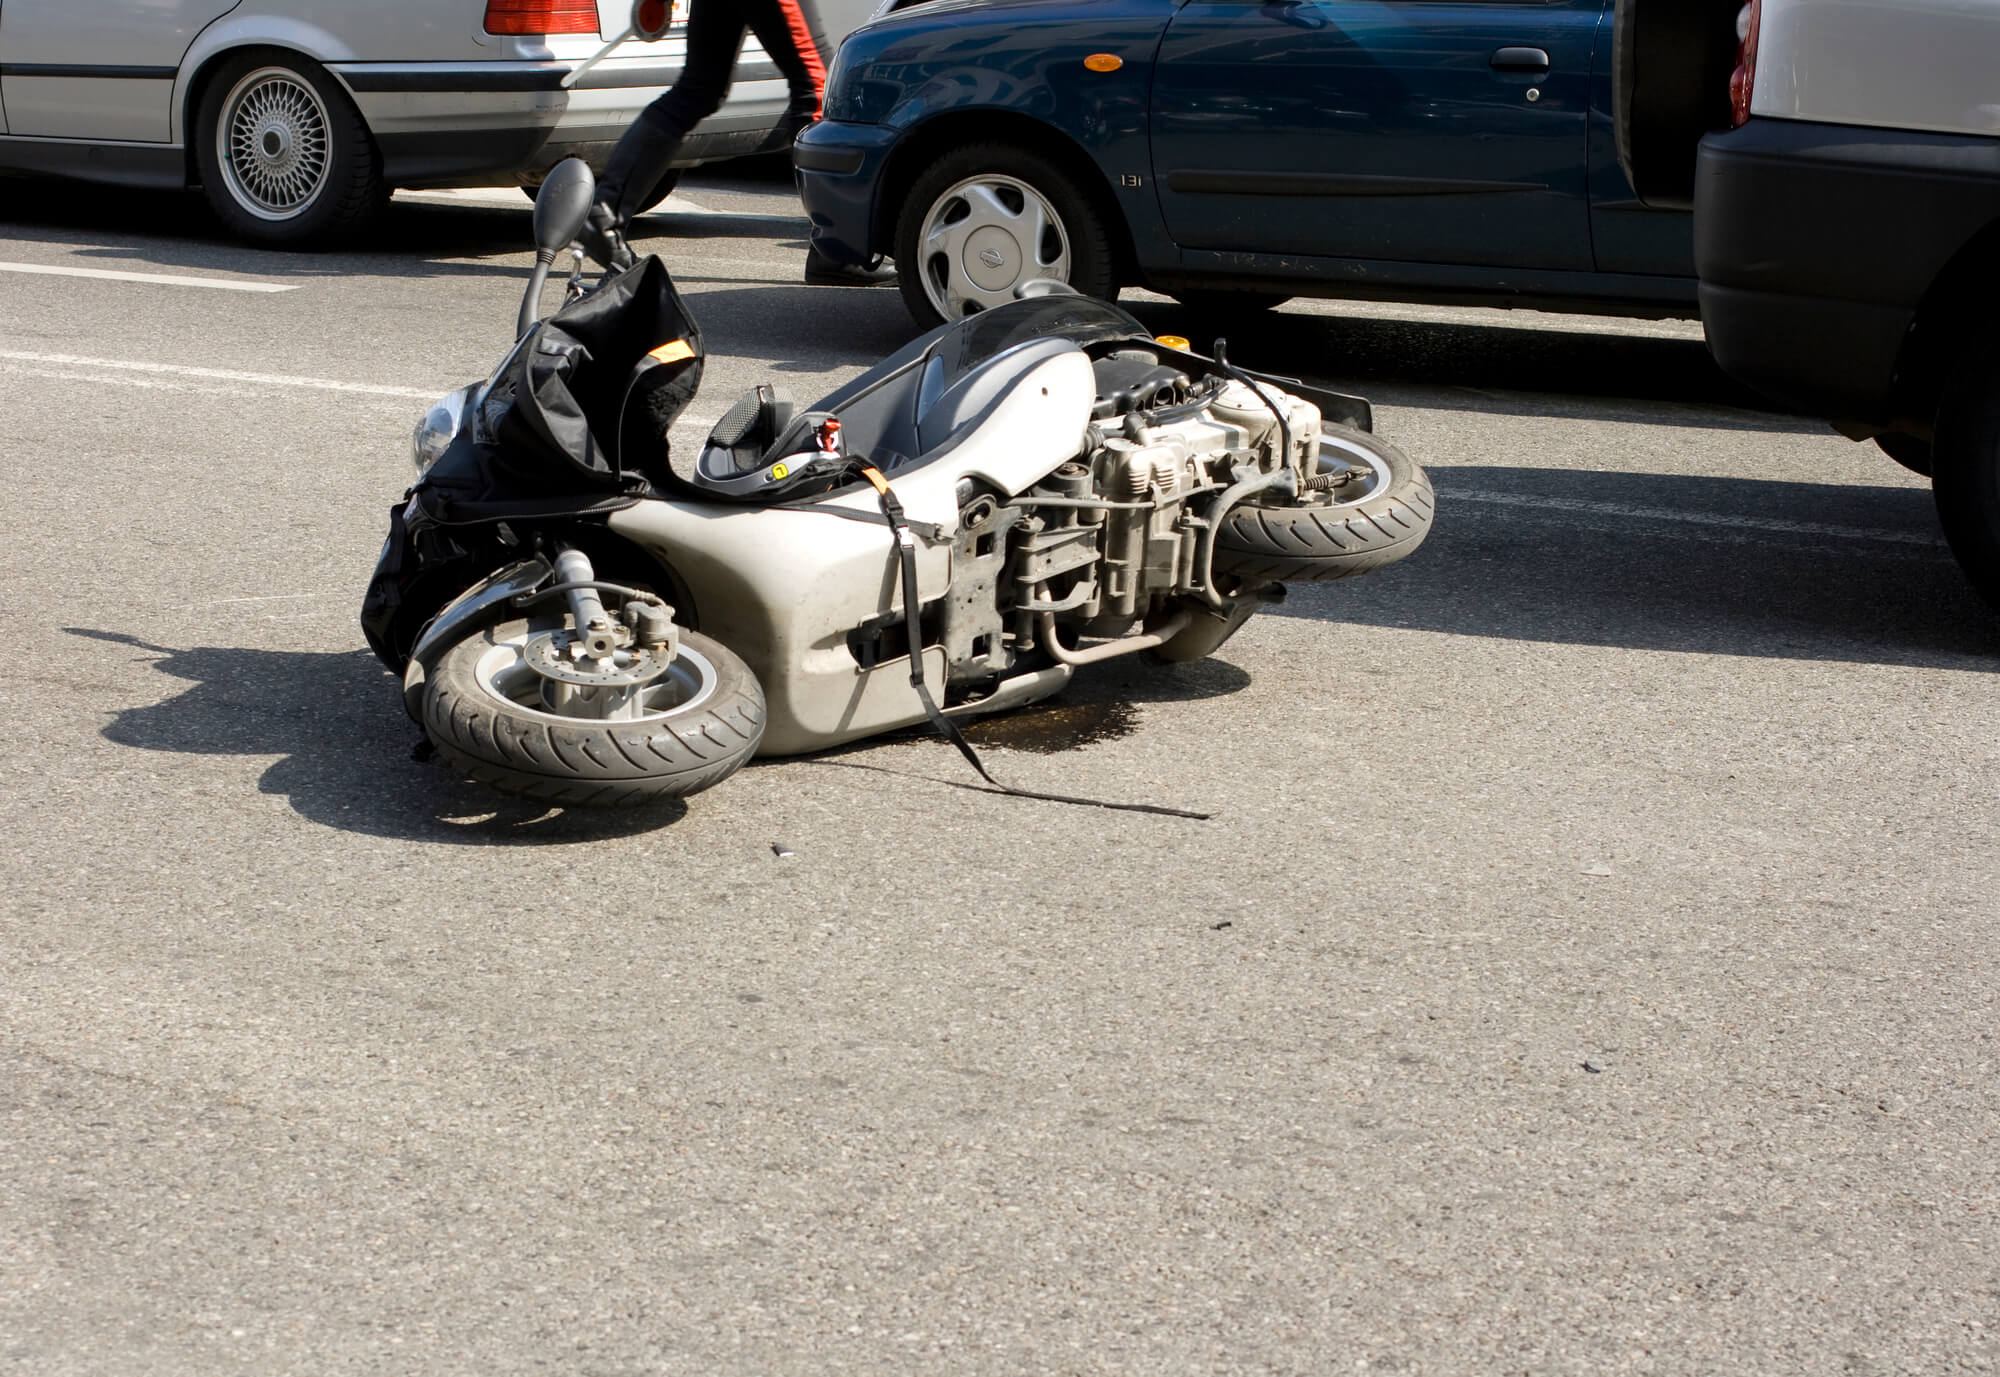 Brentwood Hit and Run Leaves Motorcyclist Critically Injured